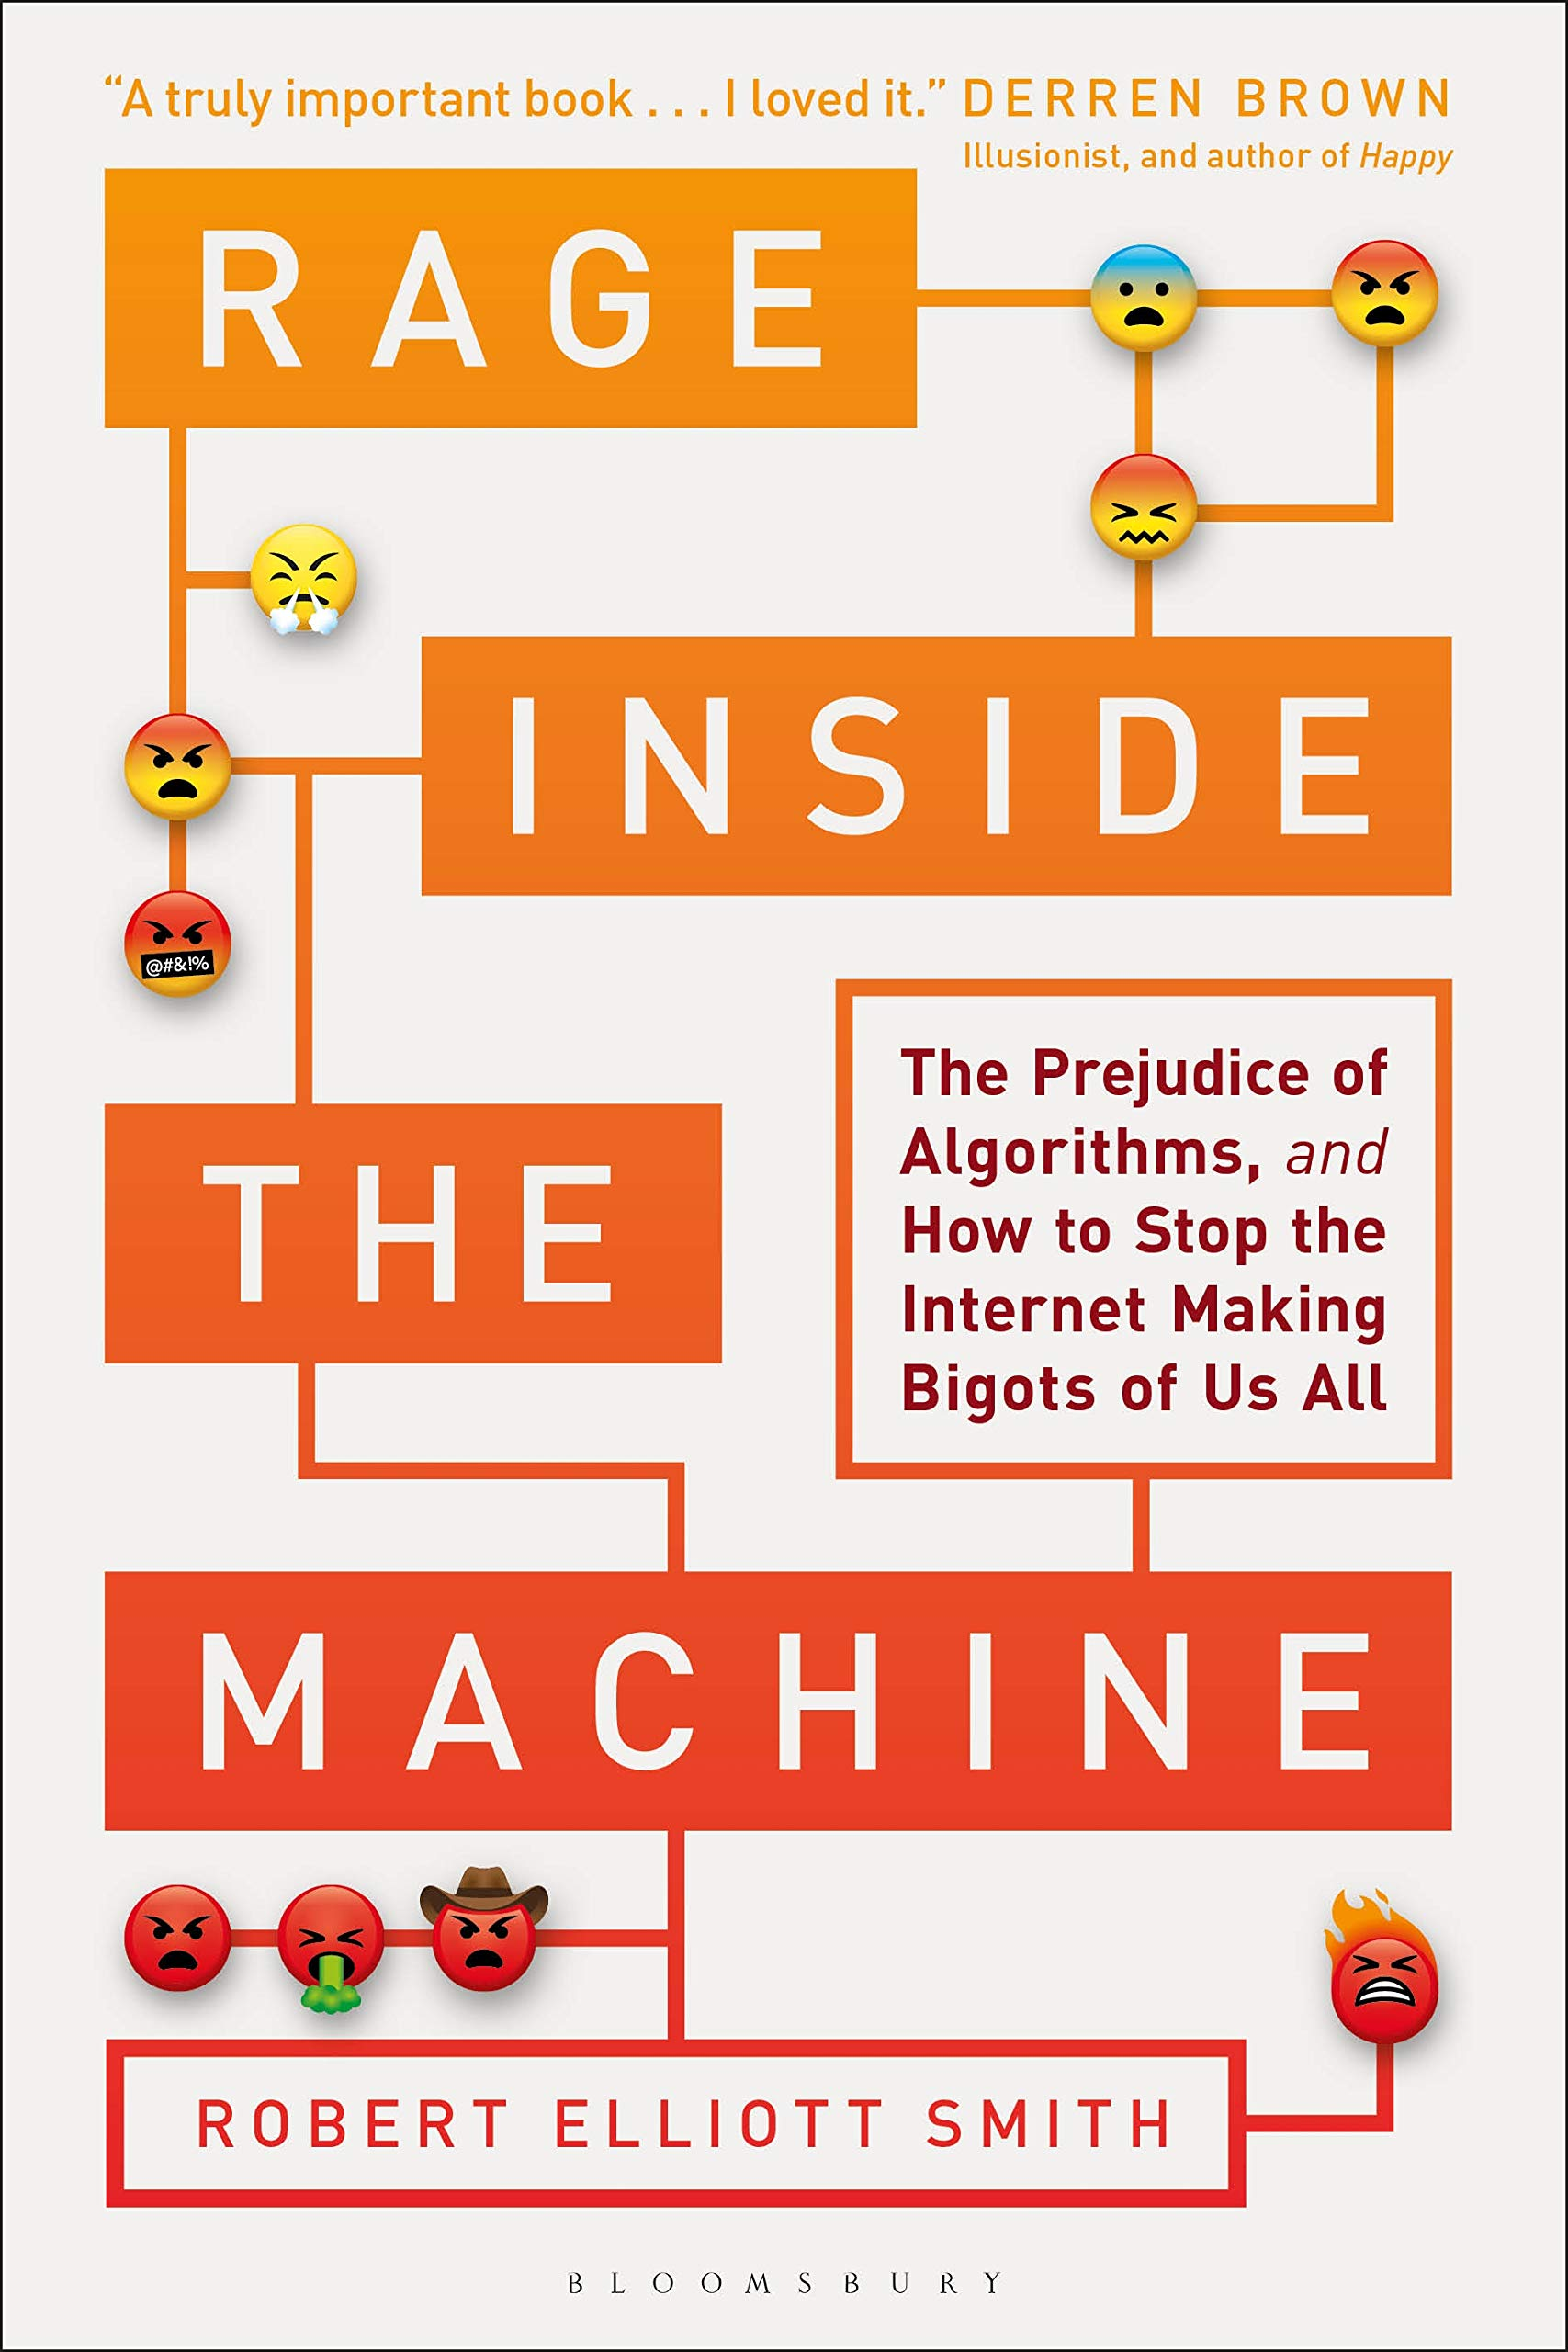 Image OfRage Inside The Machine: The Prejudice Of Algorithms, And How To Stop The Internet Making Bigots Of Us All (English Edition)